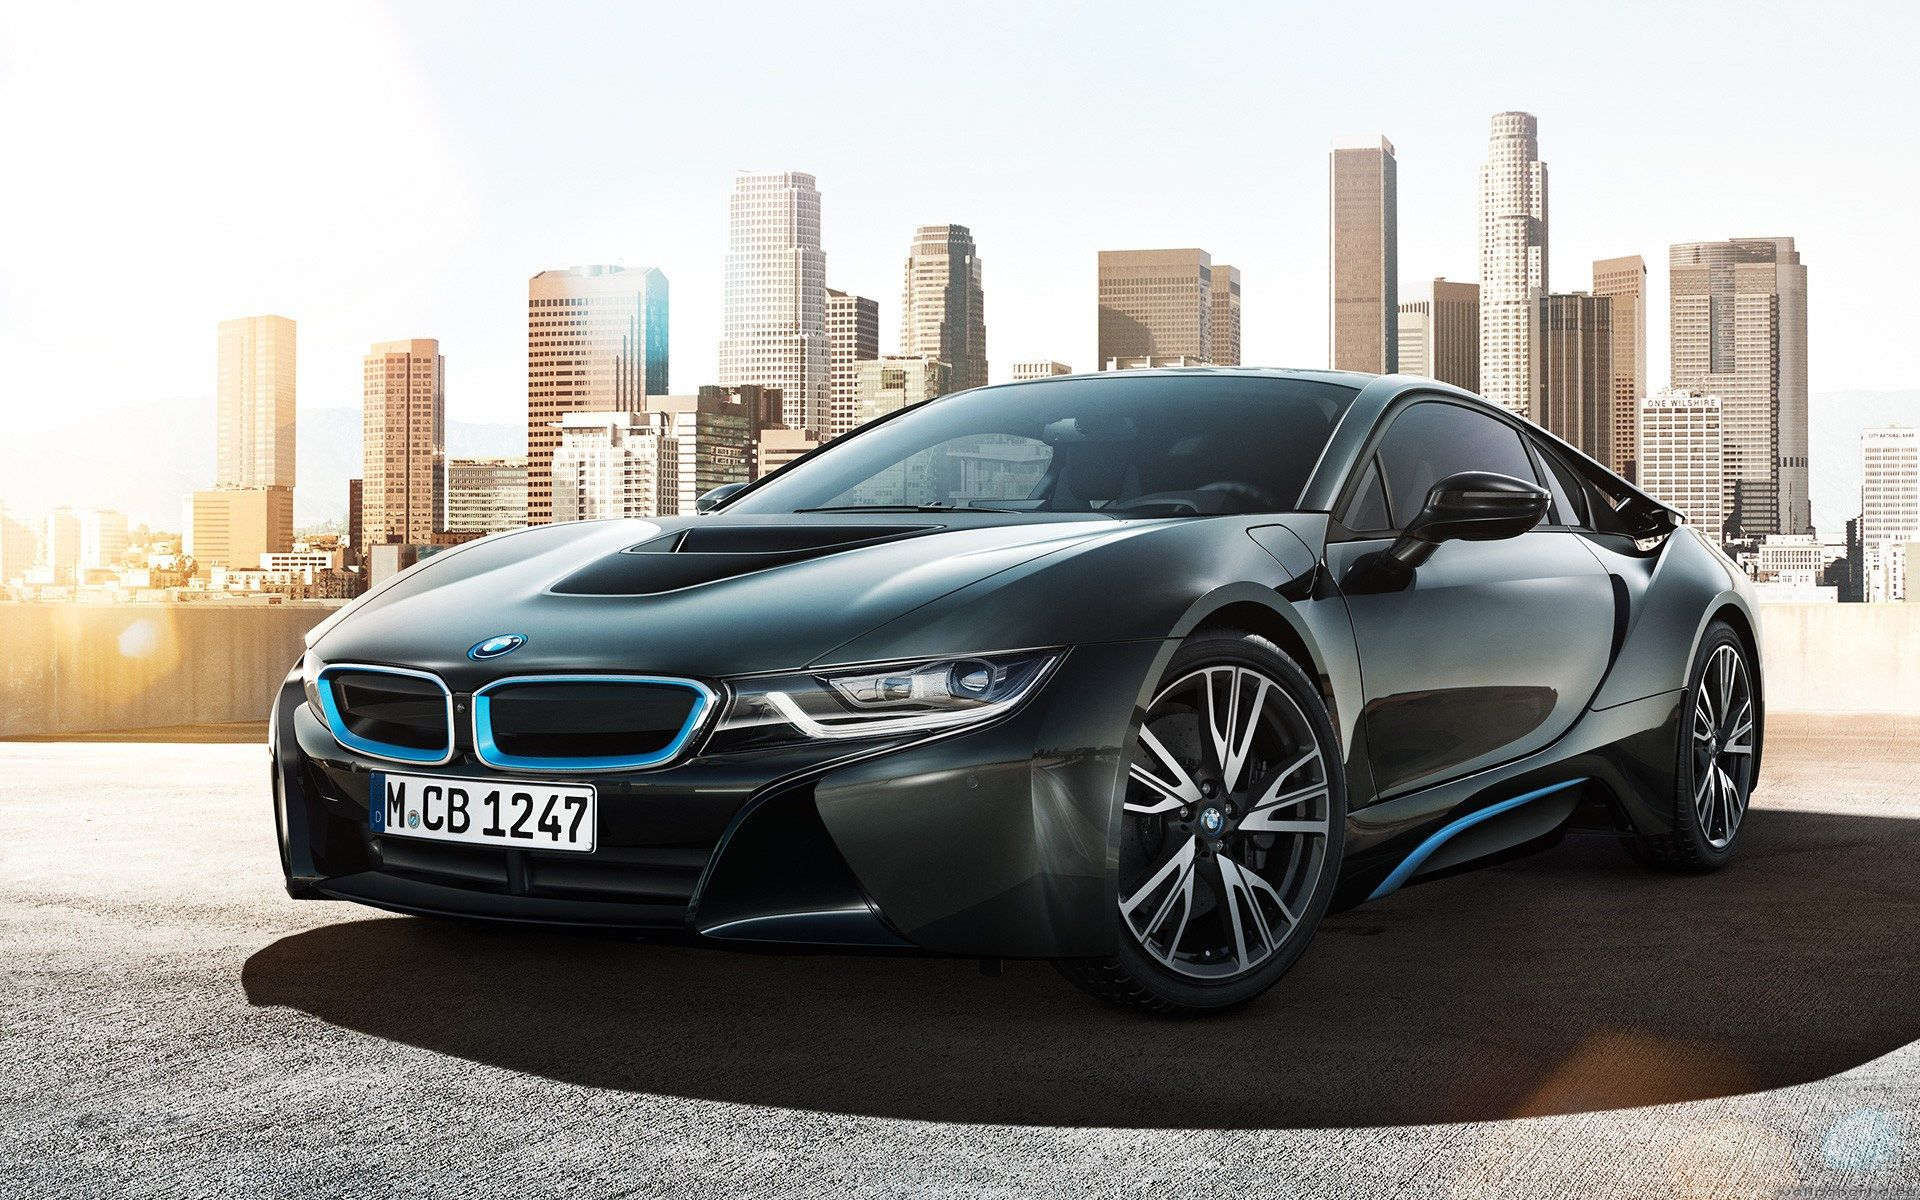 Bmw i8 concept wallpaper hd http imashon com w